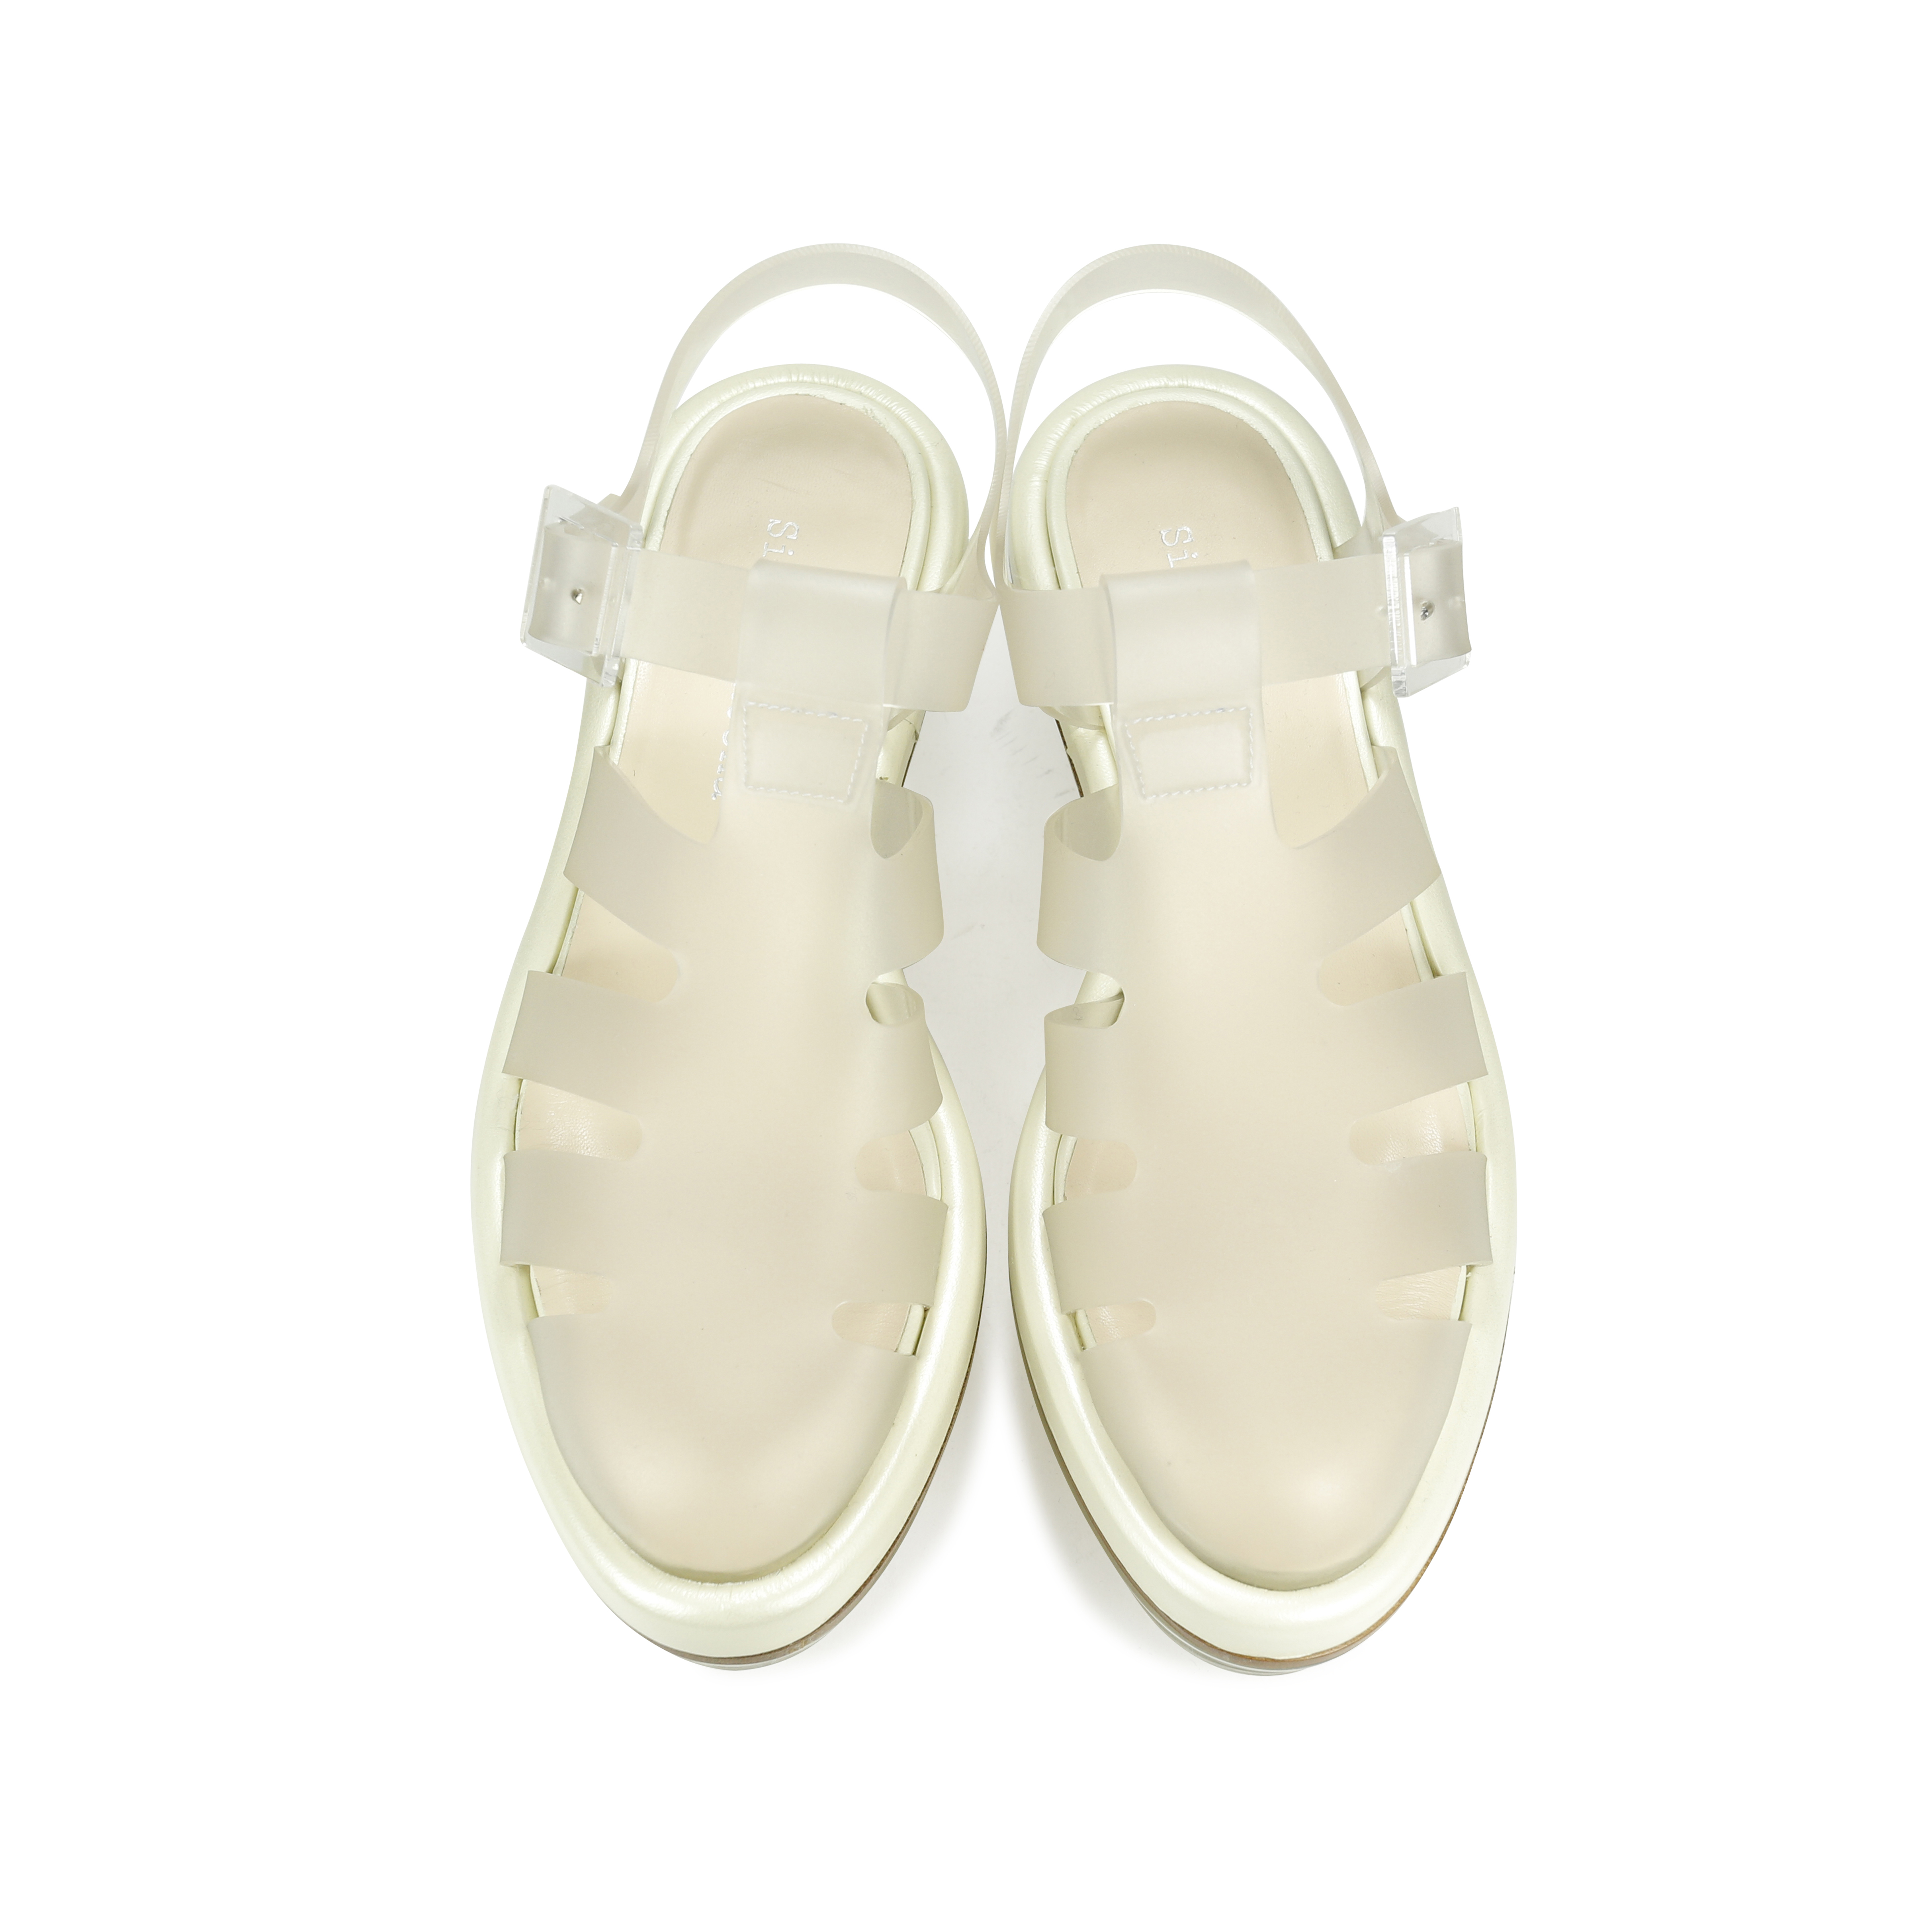 4710519624ad Authentic Second Hand Simone Rocha Clear Perspex Platform Jelly Sandals  (PSS-193-00019)